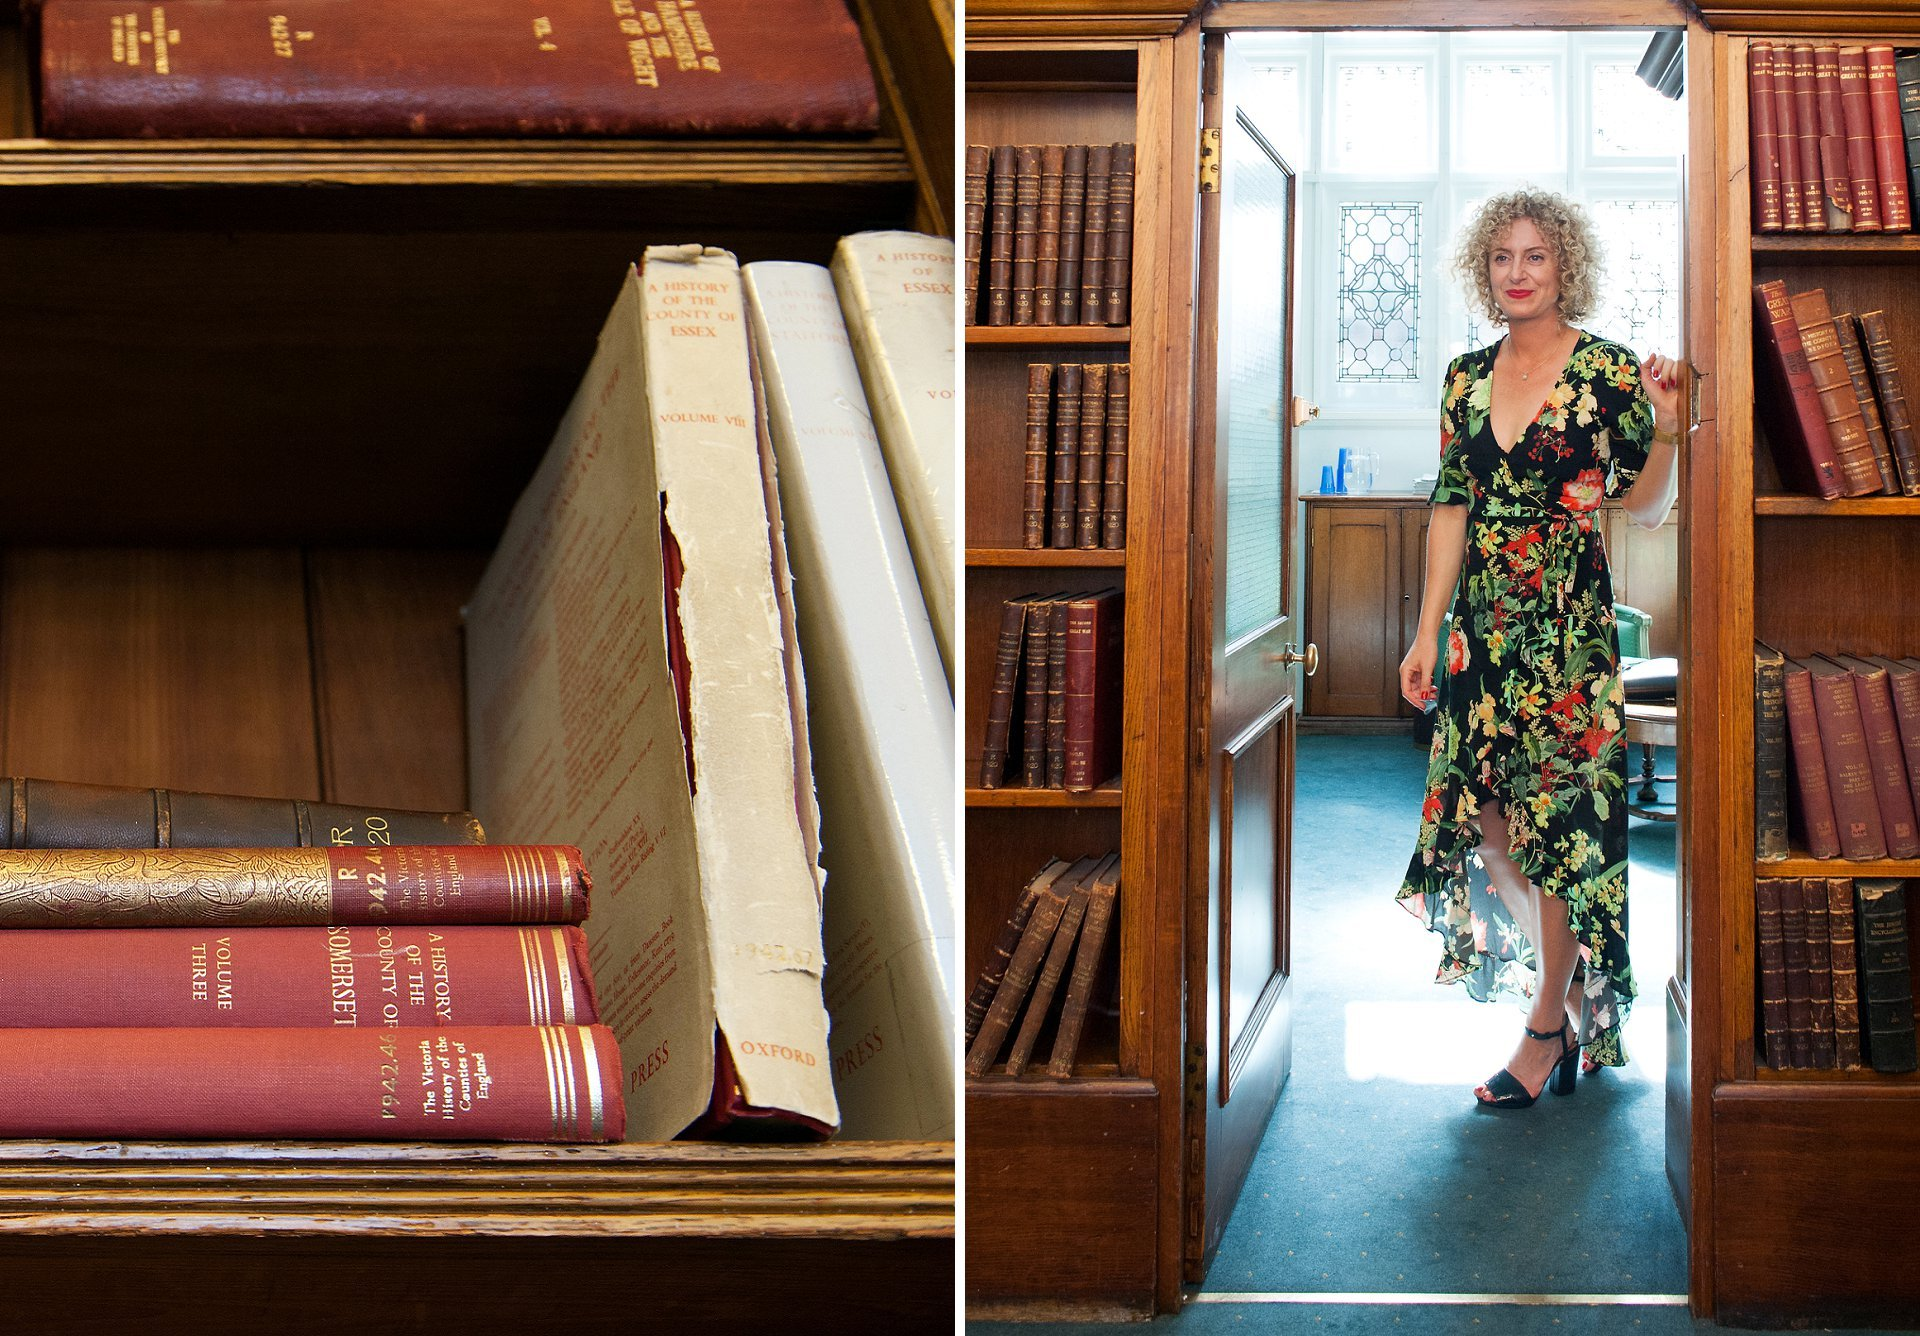 Mayfair Library has a wonderful selection of antique books on display in their ceremony rooms and here the bride, Jodie, waits for the start of her ceremony. She wears a floral print wrap dress with trim detail in black, green, yellow, orange, red and pale pink and this is teamed with black heeled sandals